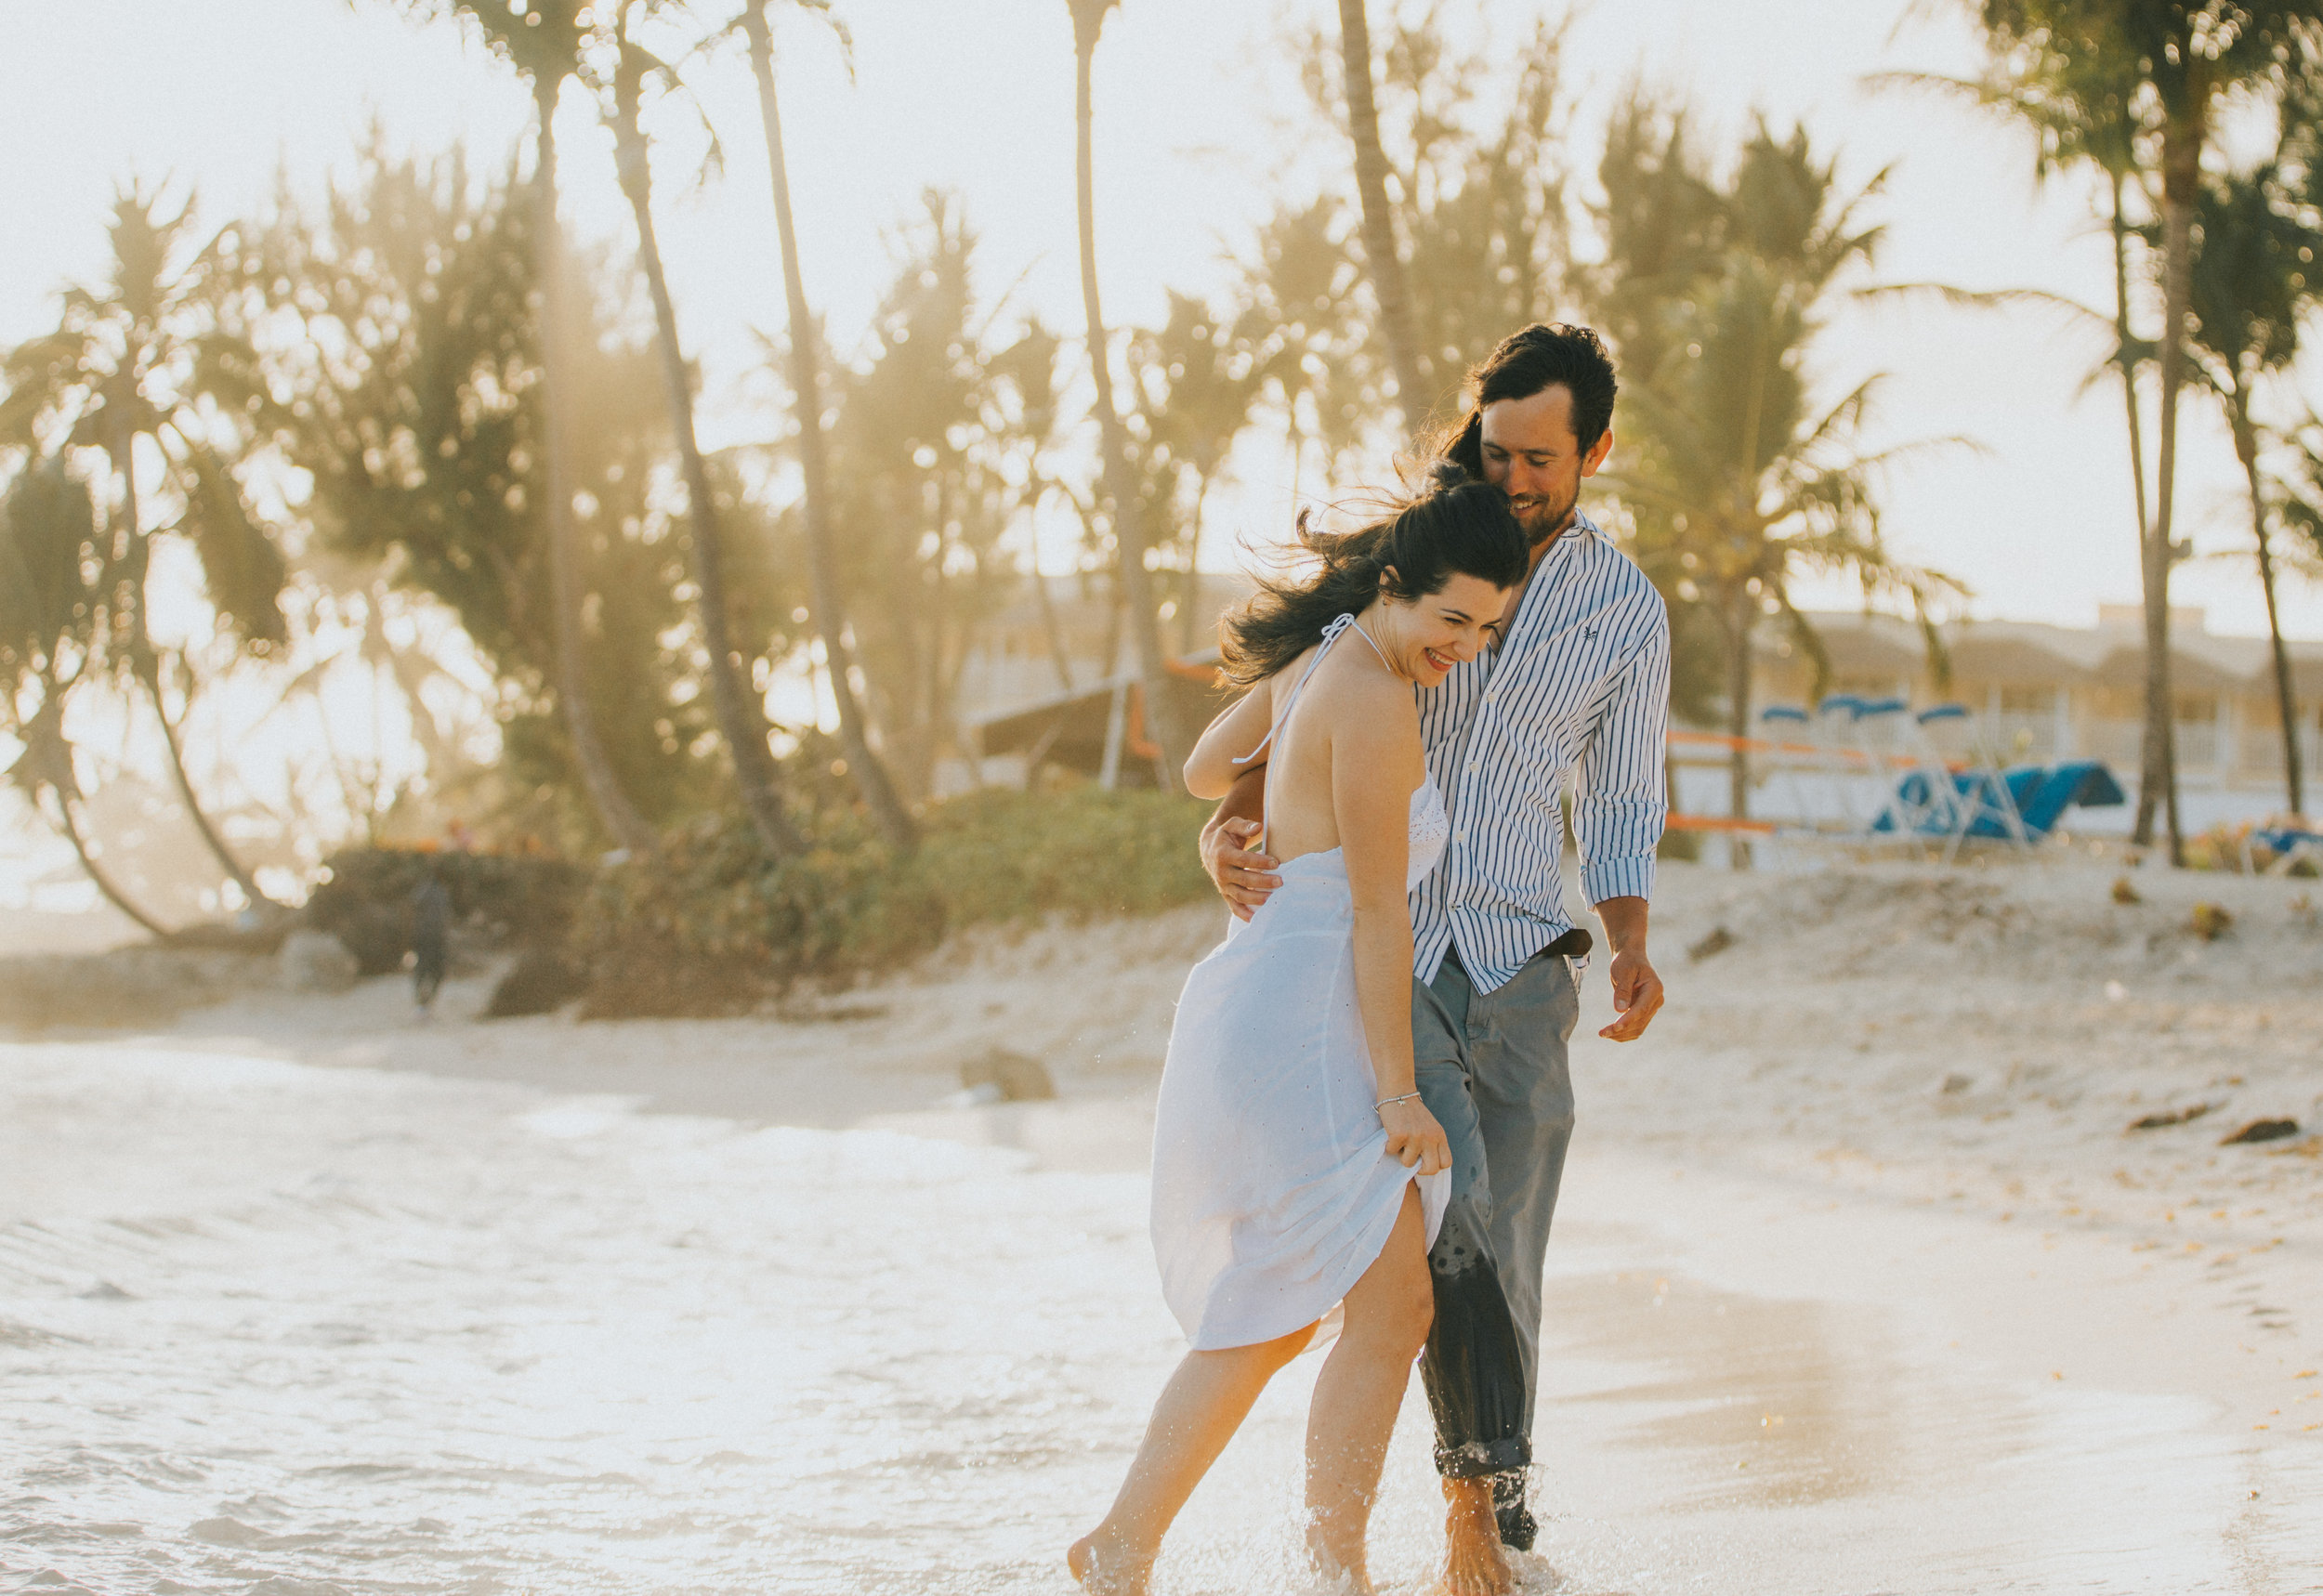 Destination Wedding - Barbados - Weddings Videos